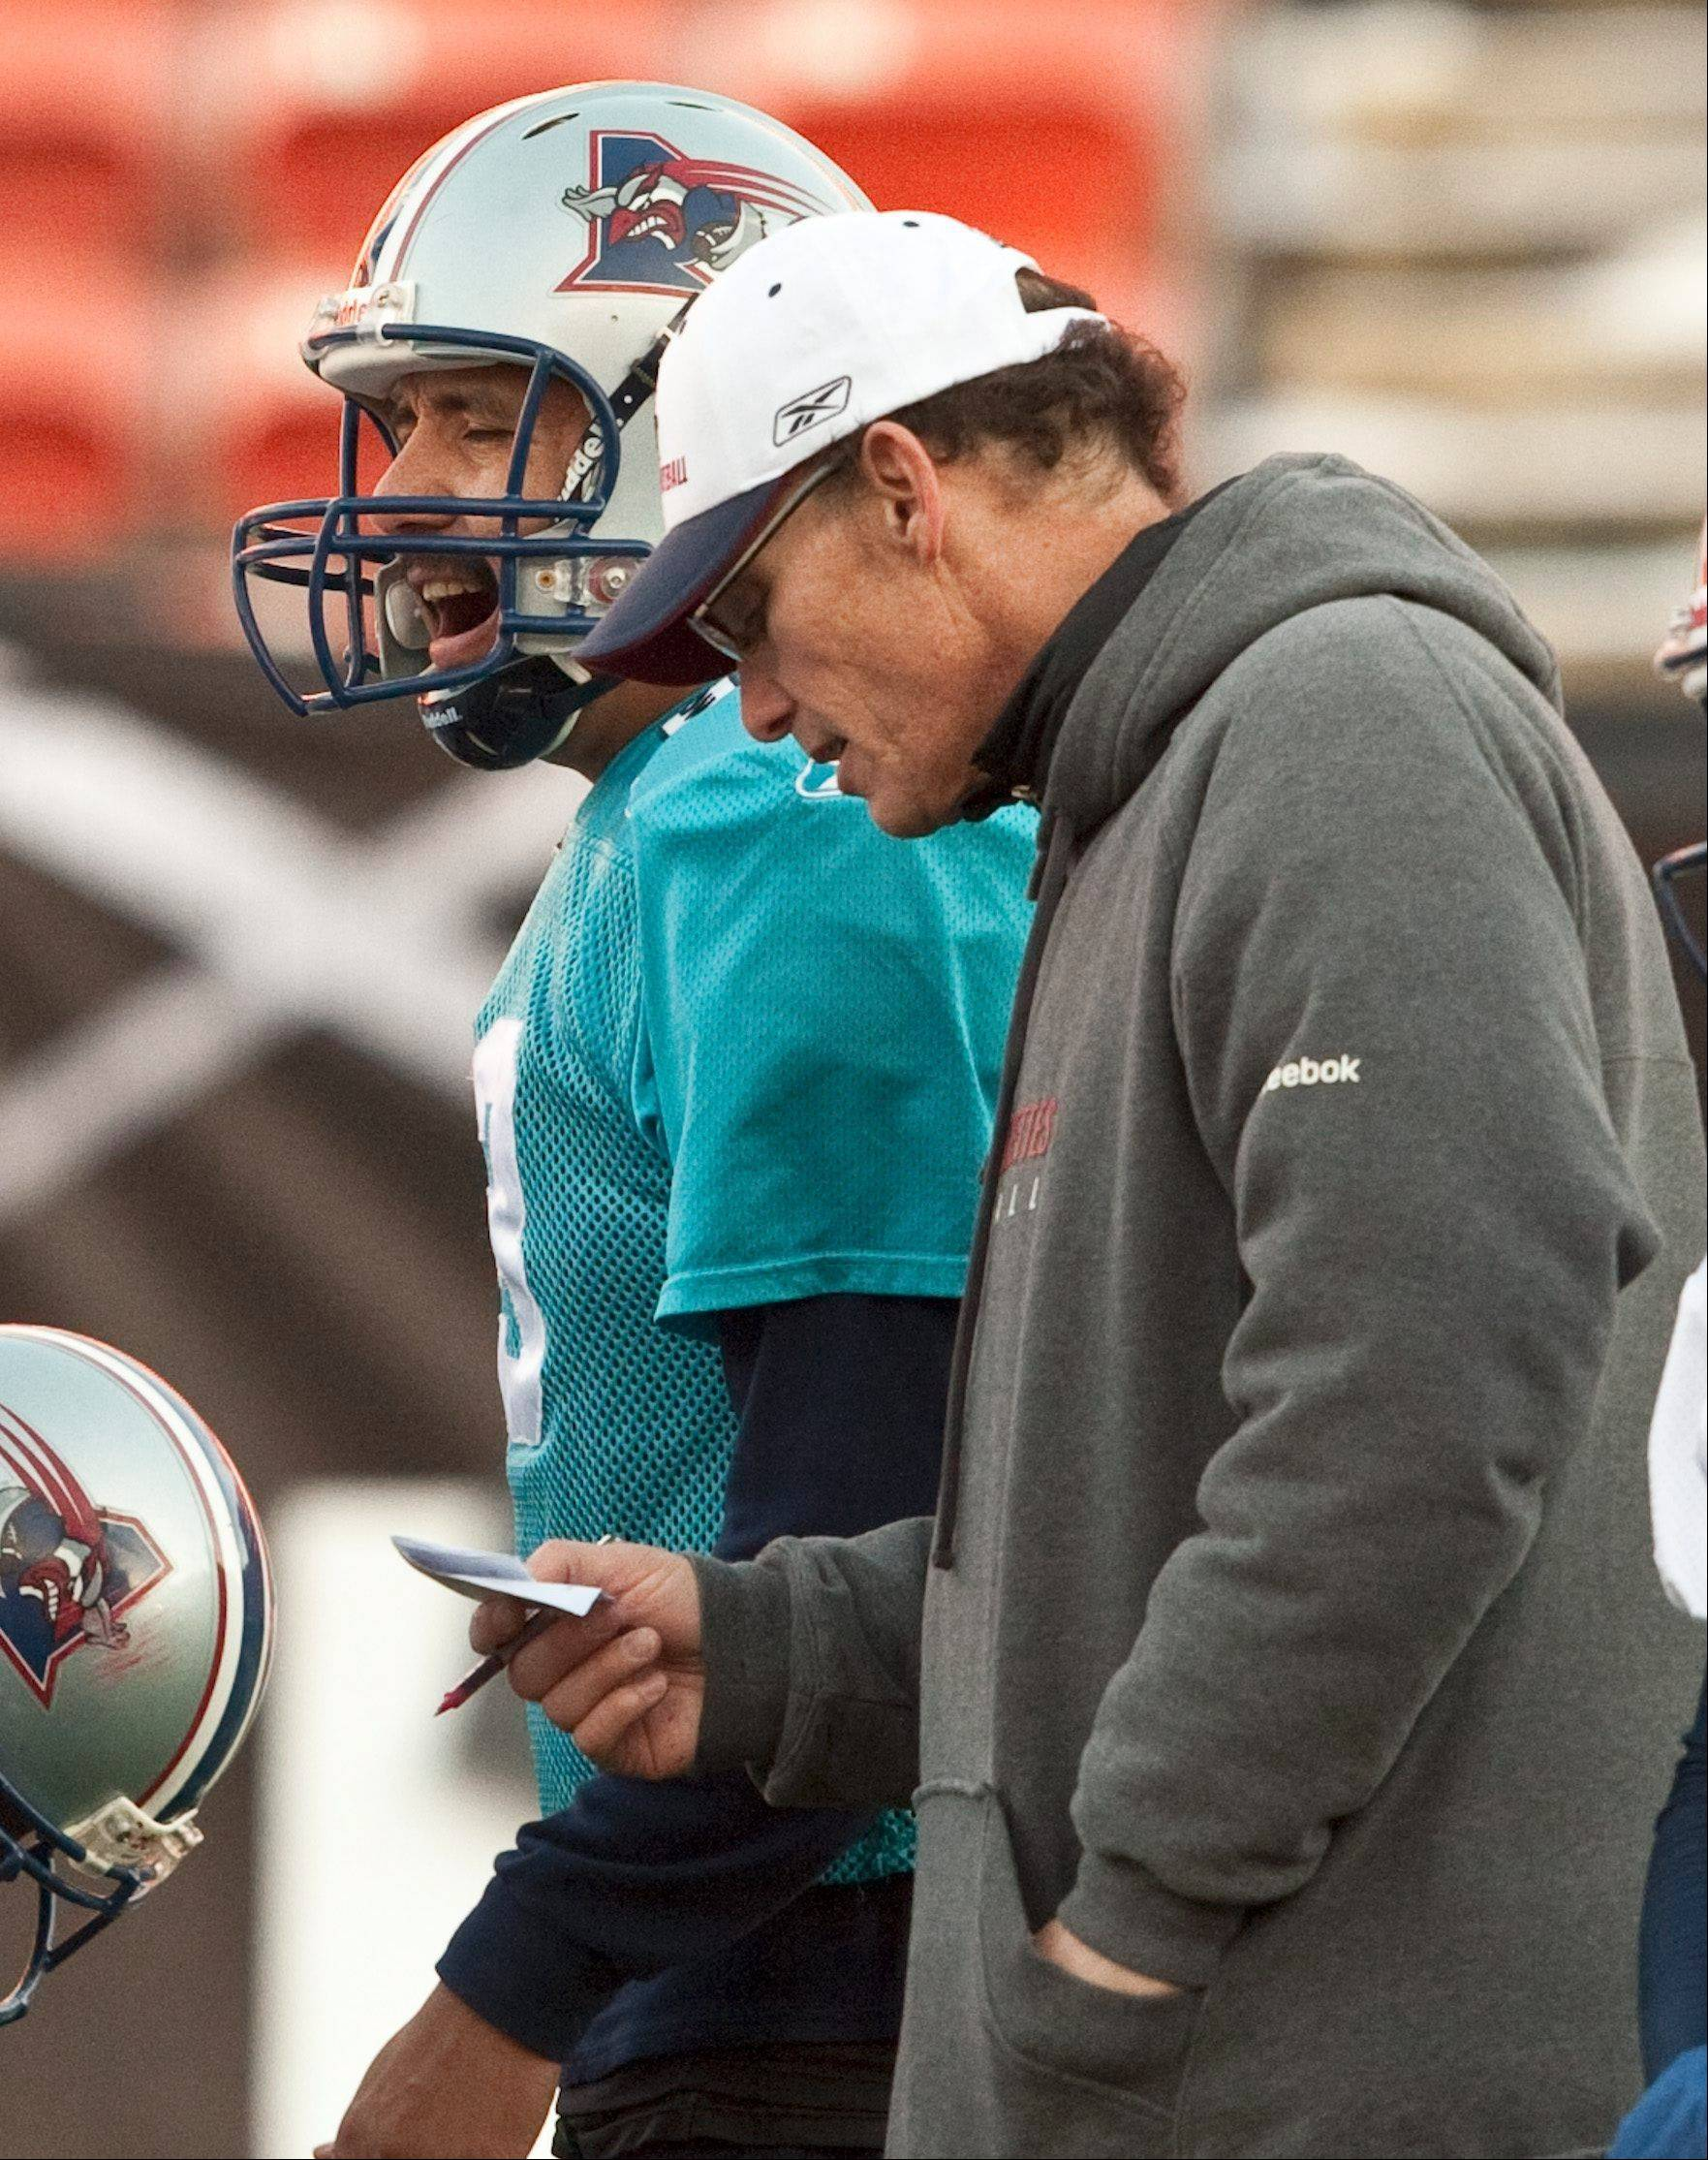 Montreal Alouettes head coach Mark Trestman, a candidate for the Bears head-coaching job, has denied a report that he has been given the job.